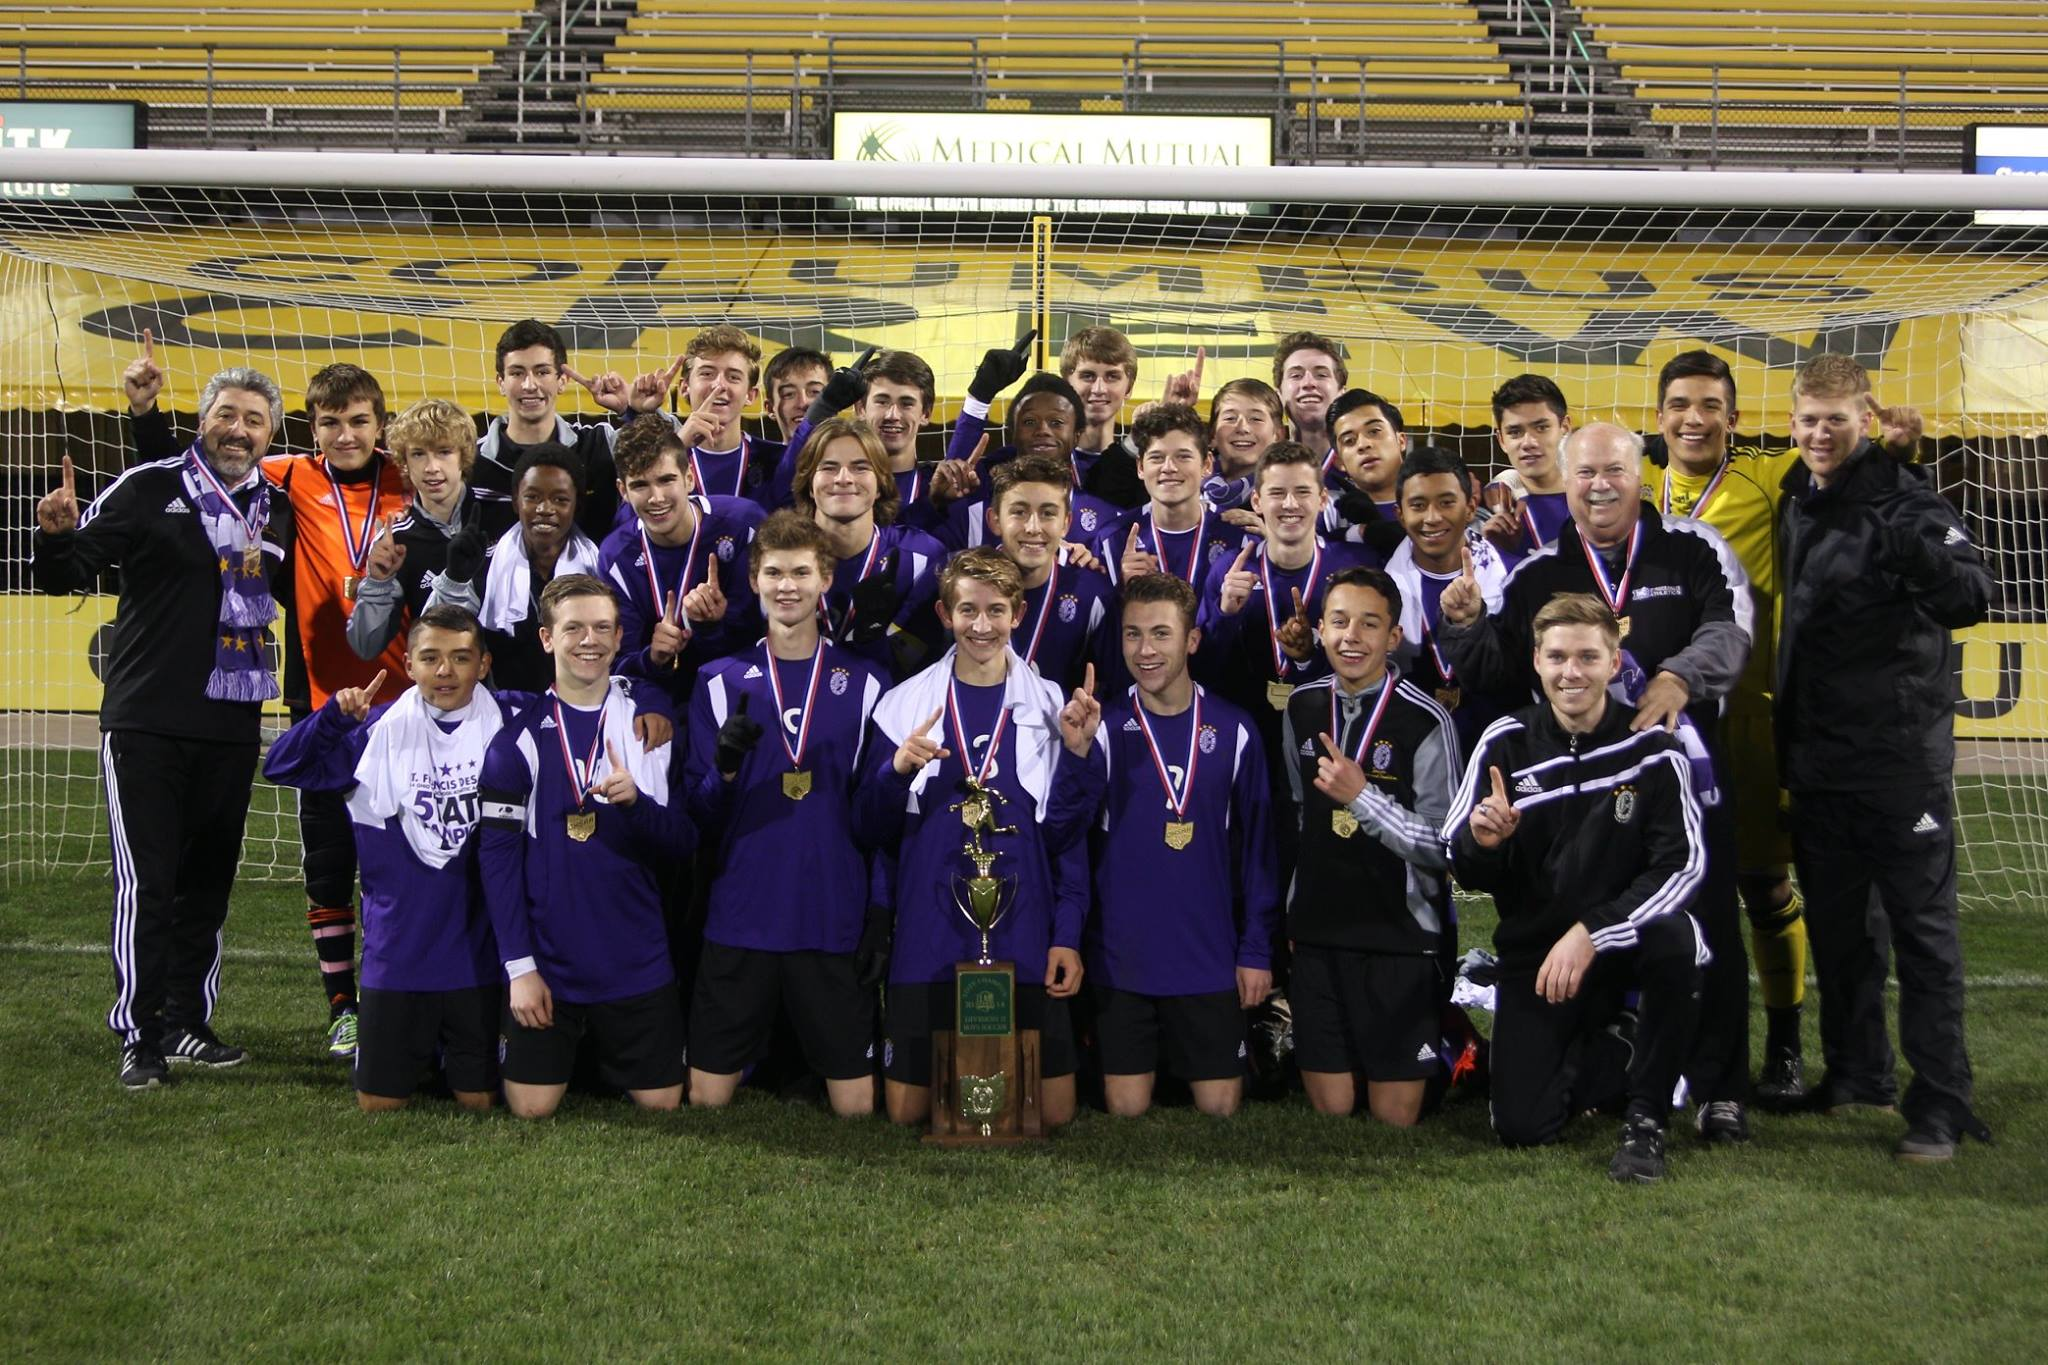 2014 STATE CHAMPIONS    Boys Soccer